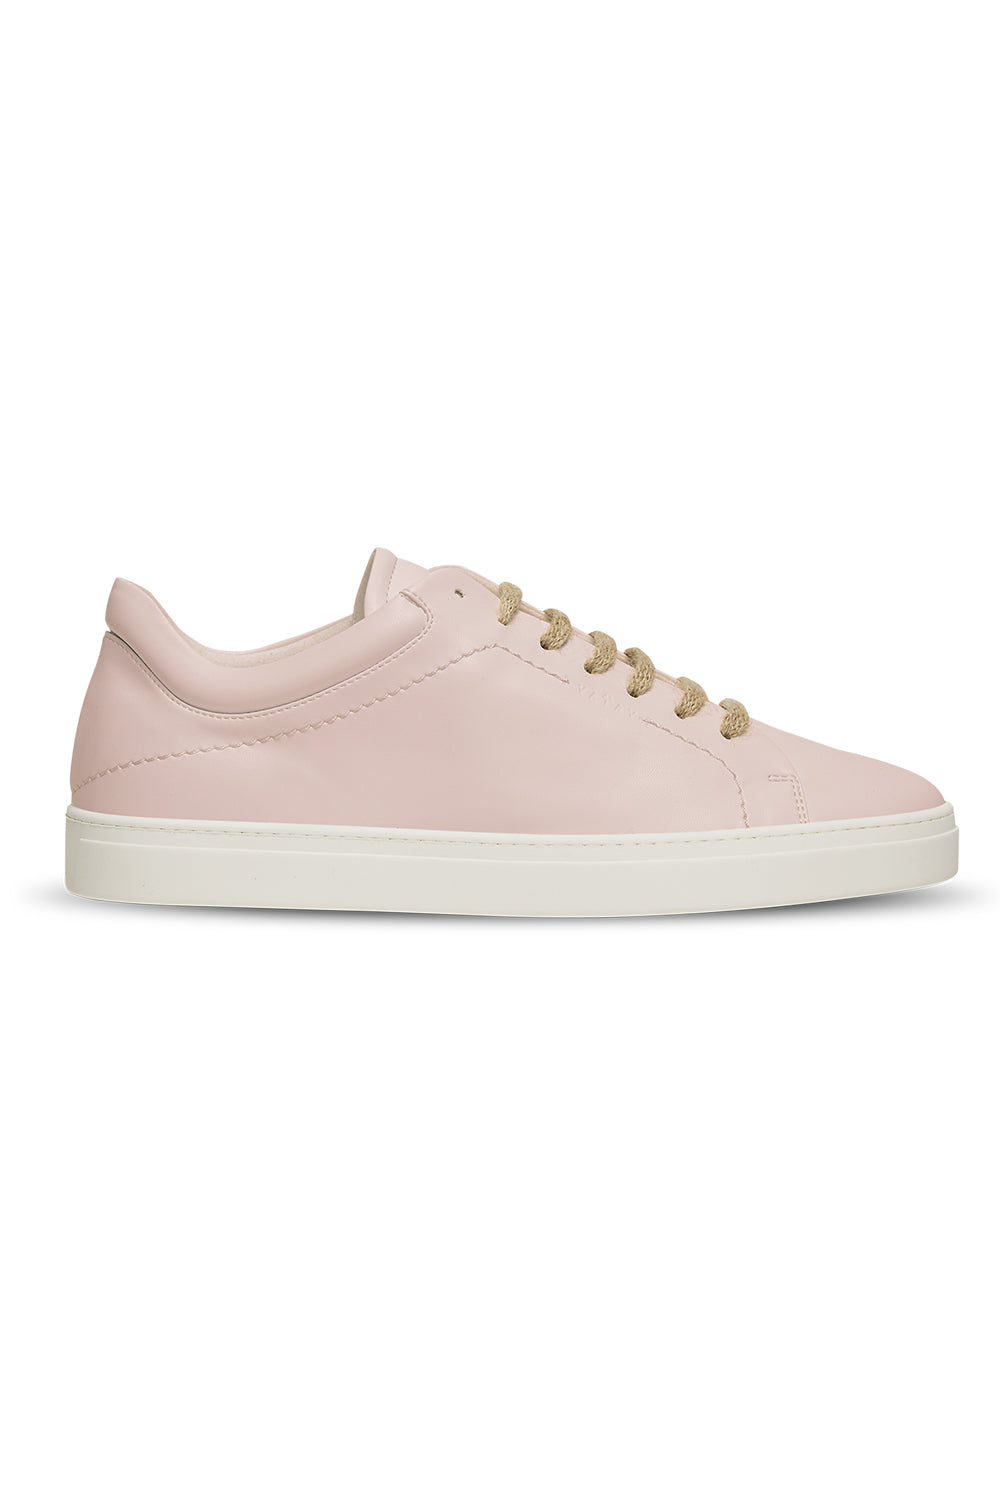 Neven Low Sneaker in Himalayan Pink